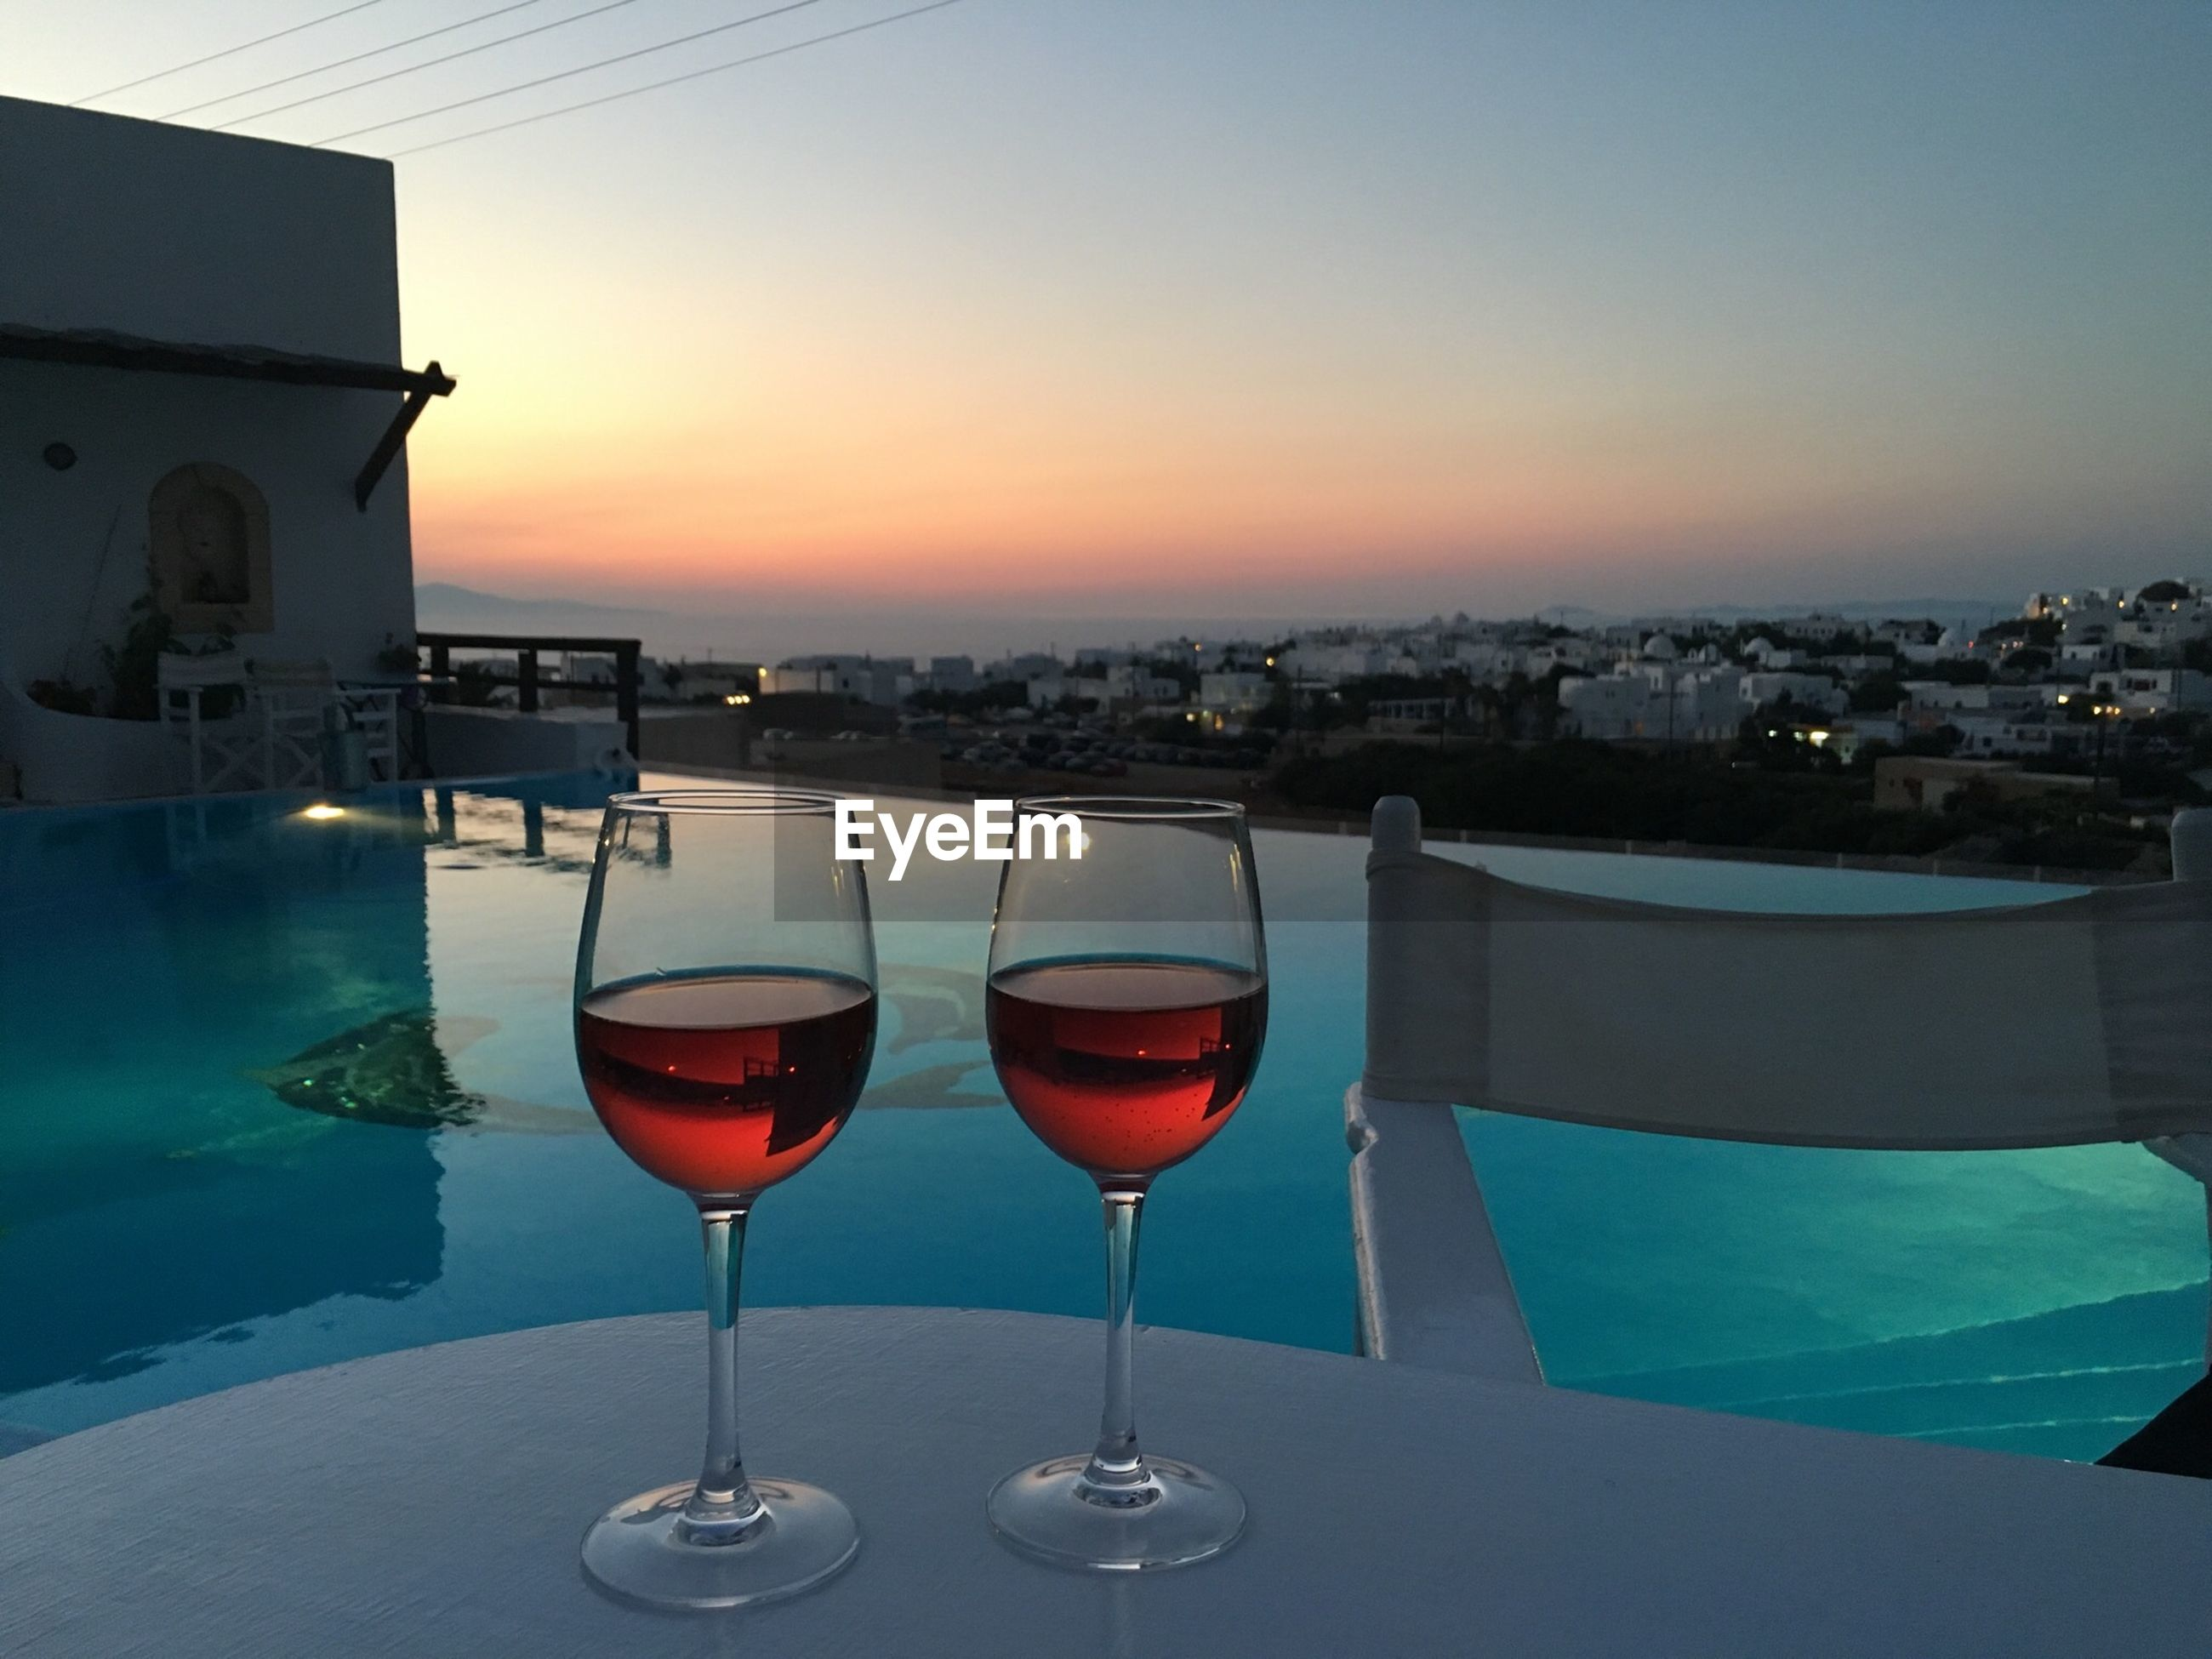 Wine glasses on table by swimming pool against sky during sunset